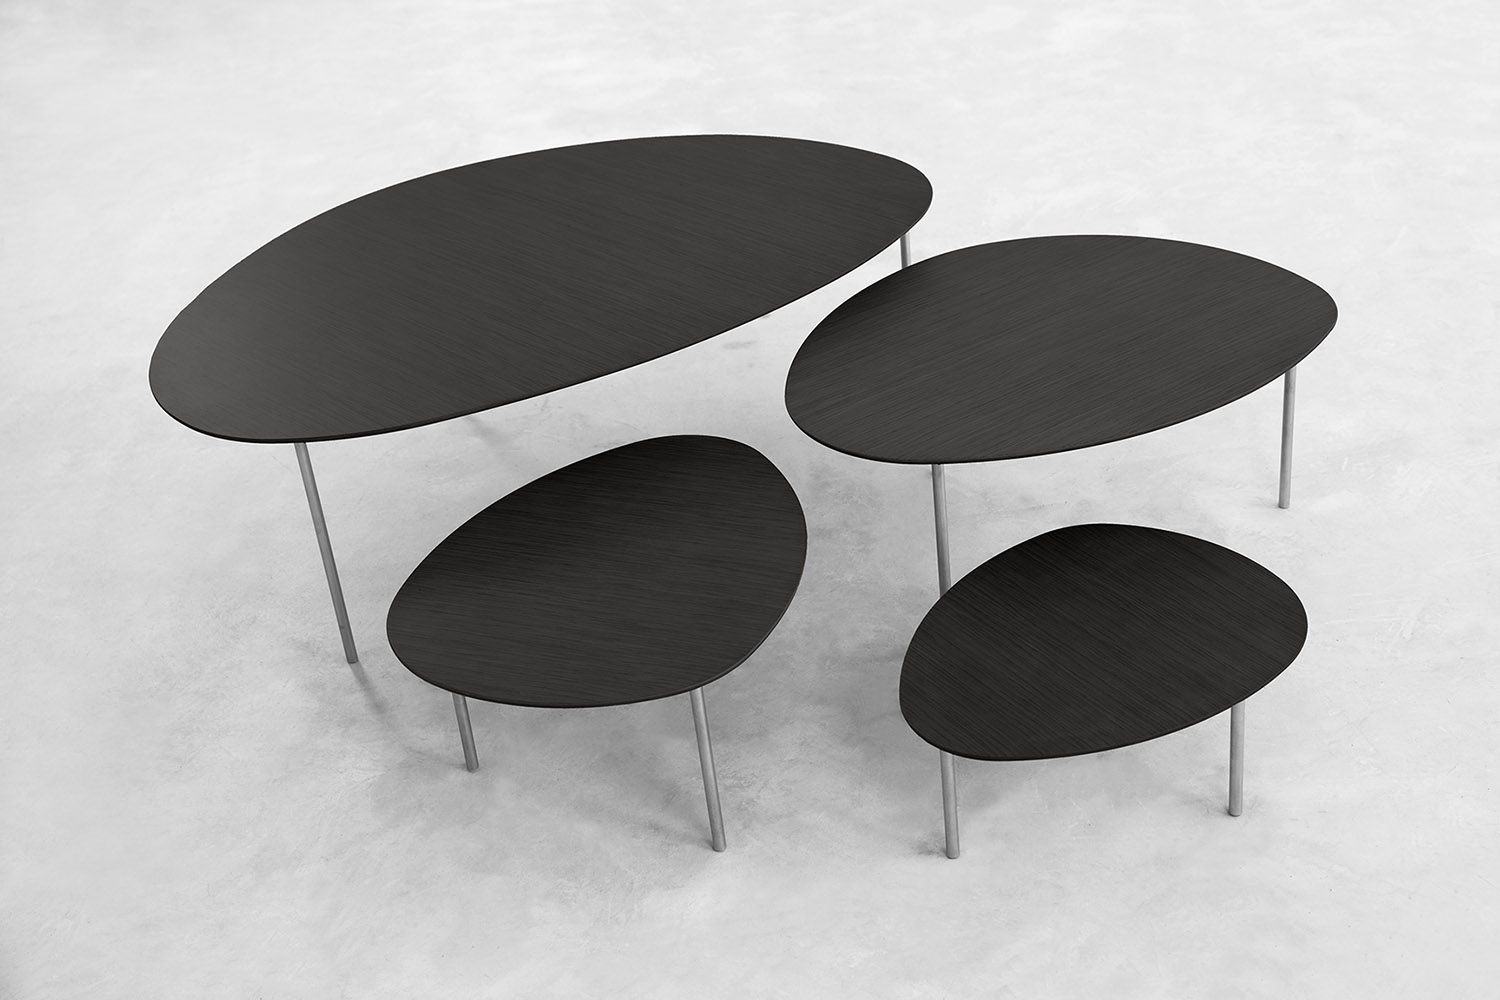 STUA Eclipse nesting tables with organic shapes